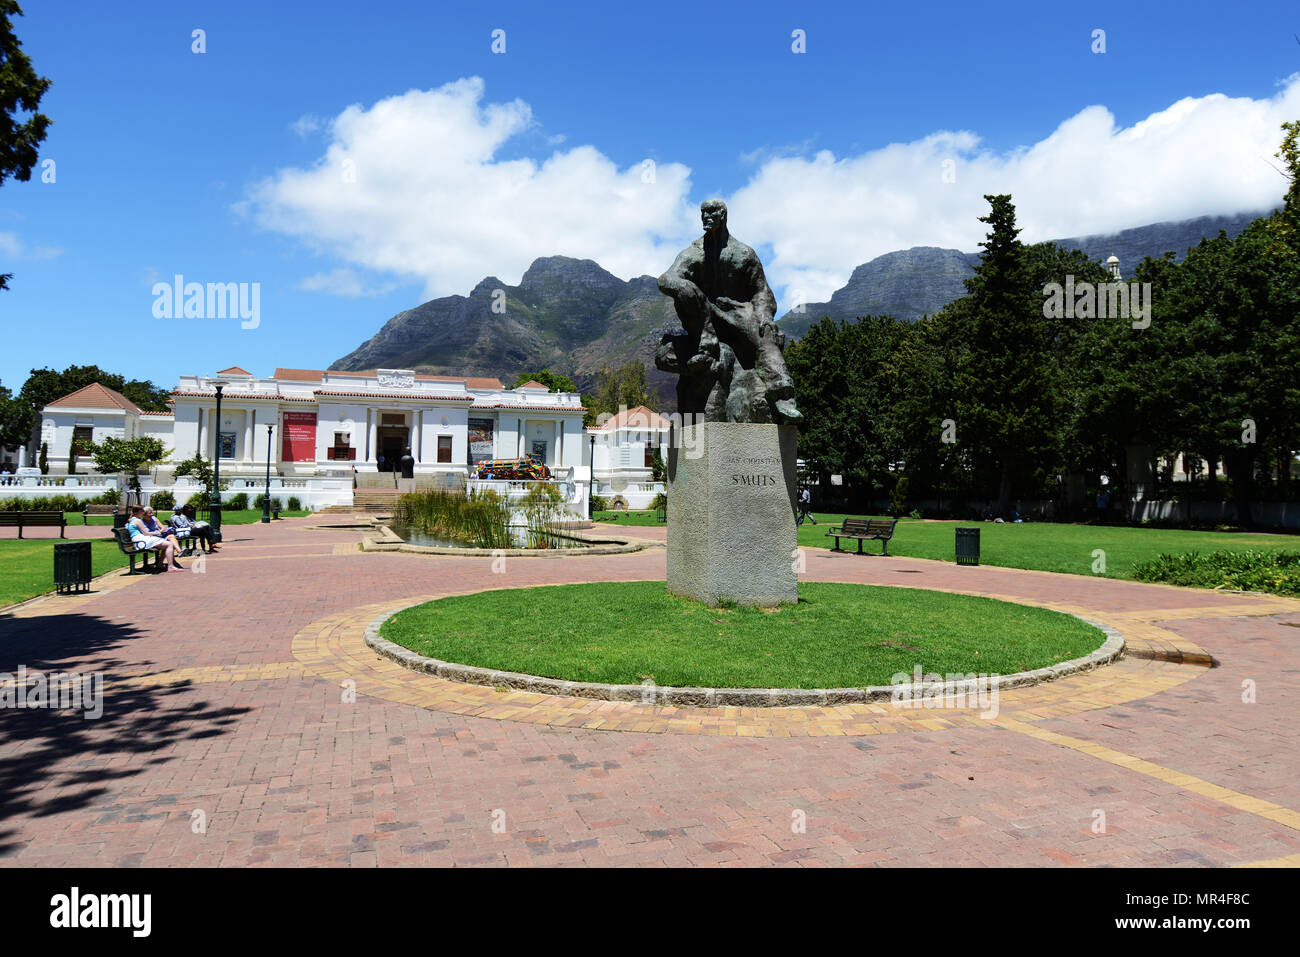 Statue of Jan Christiaan Smuts and the South African National Gallery behind it. - Stock Image